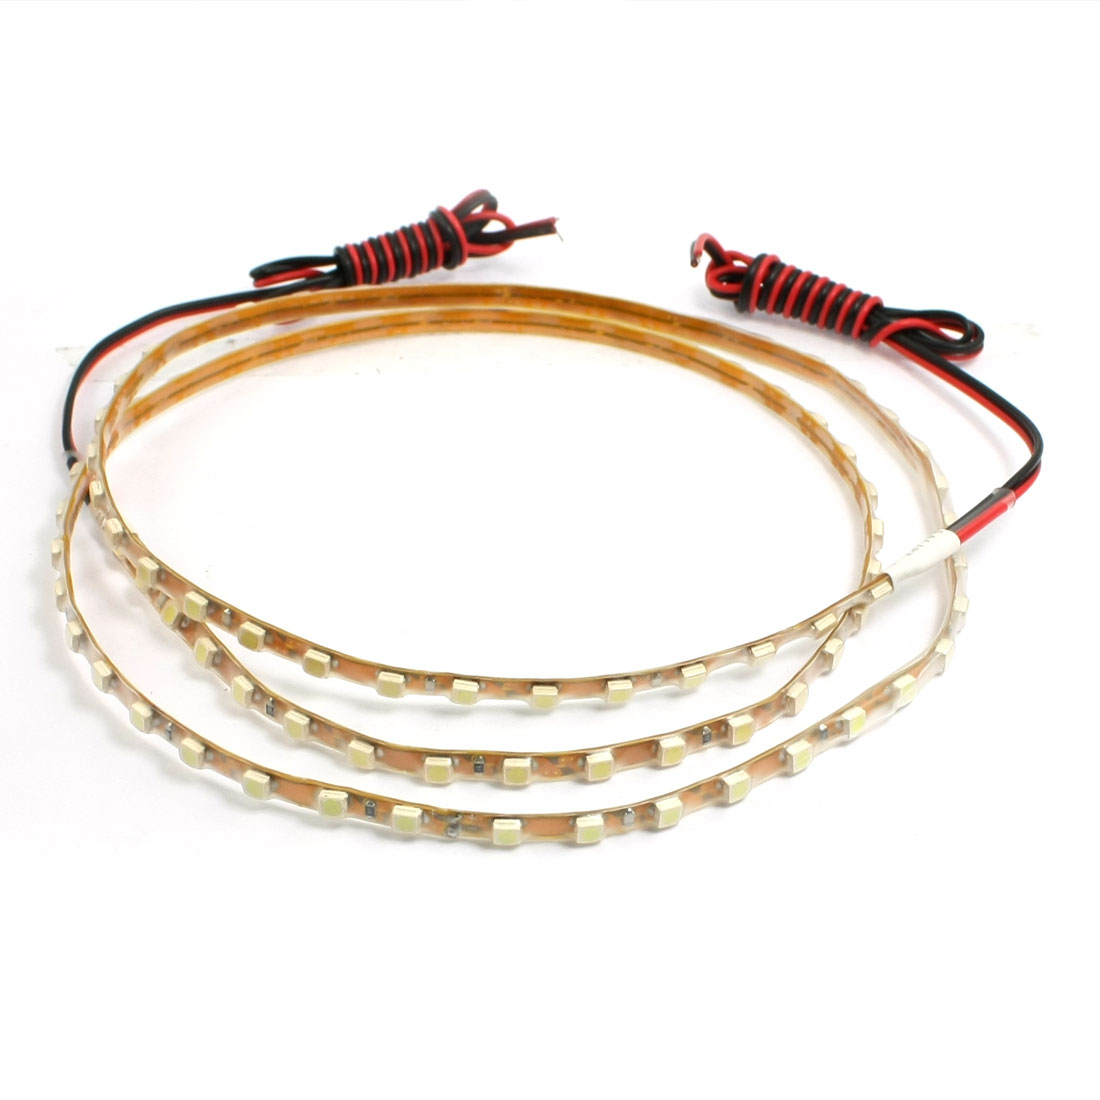 Car Truck 90 LED 1210 3528 SMD Decorative Flexible Light Strip Bar White 90cm